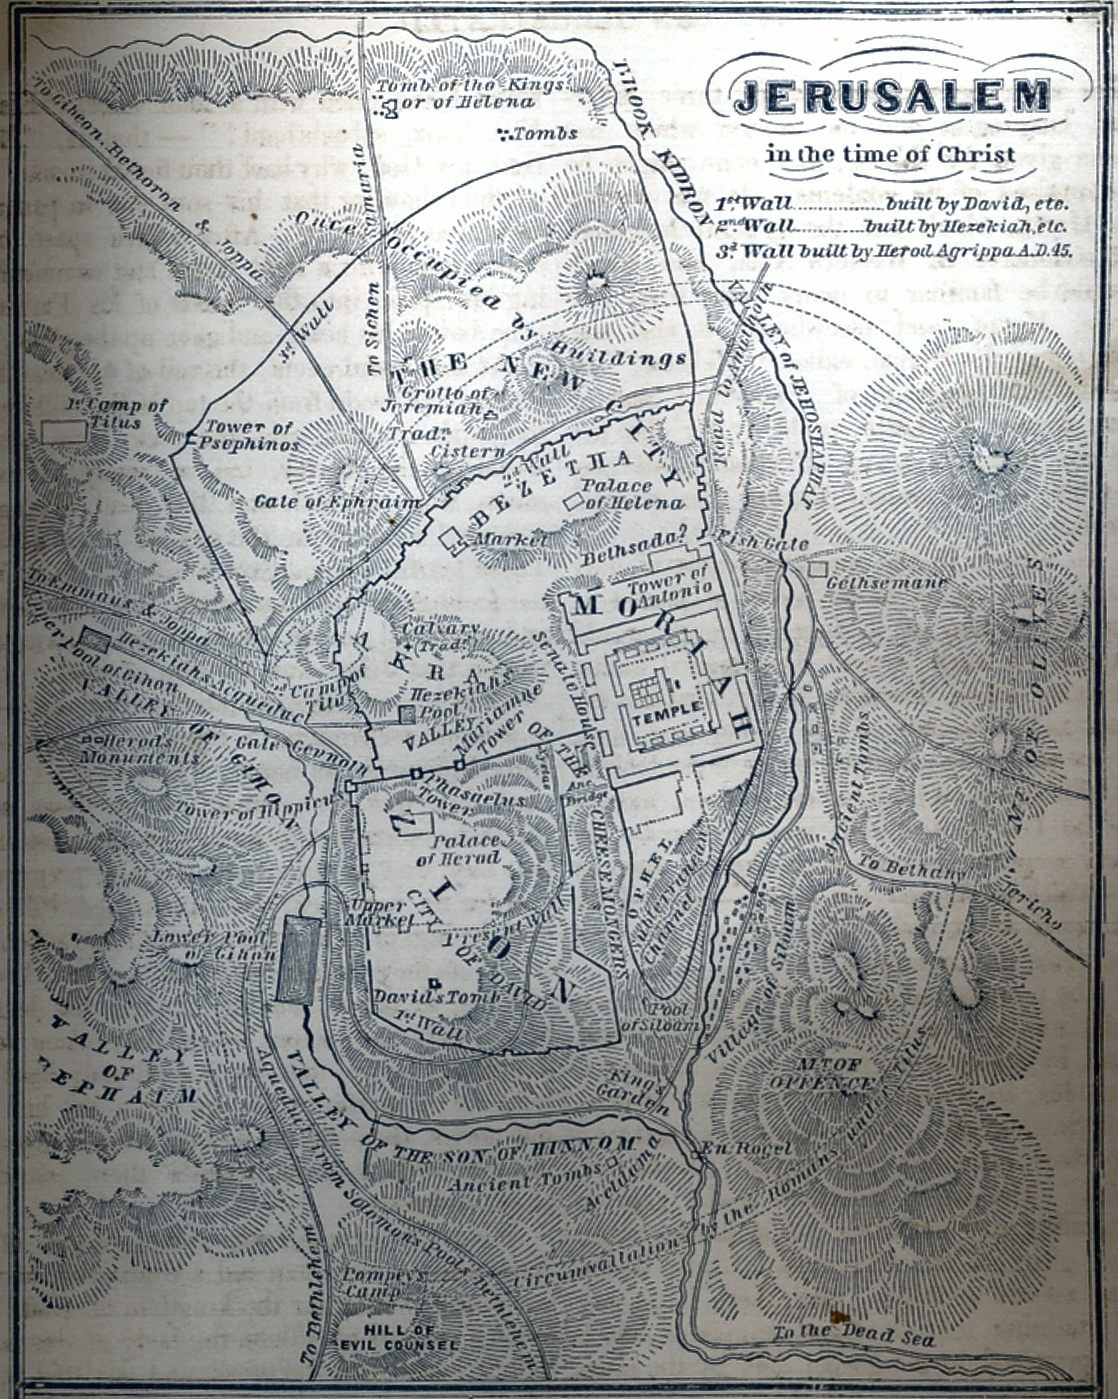 Jerusalem in the Time of Christ Map